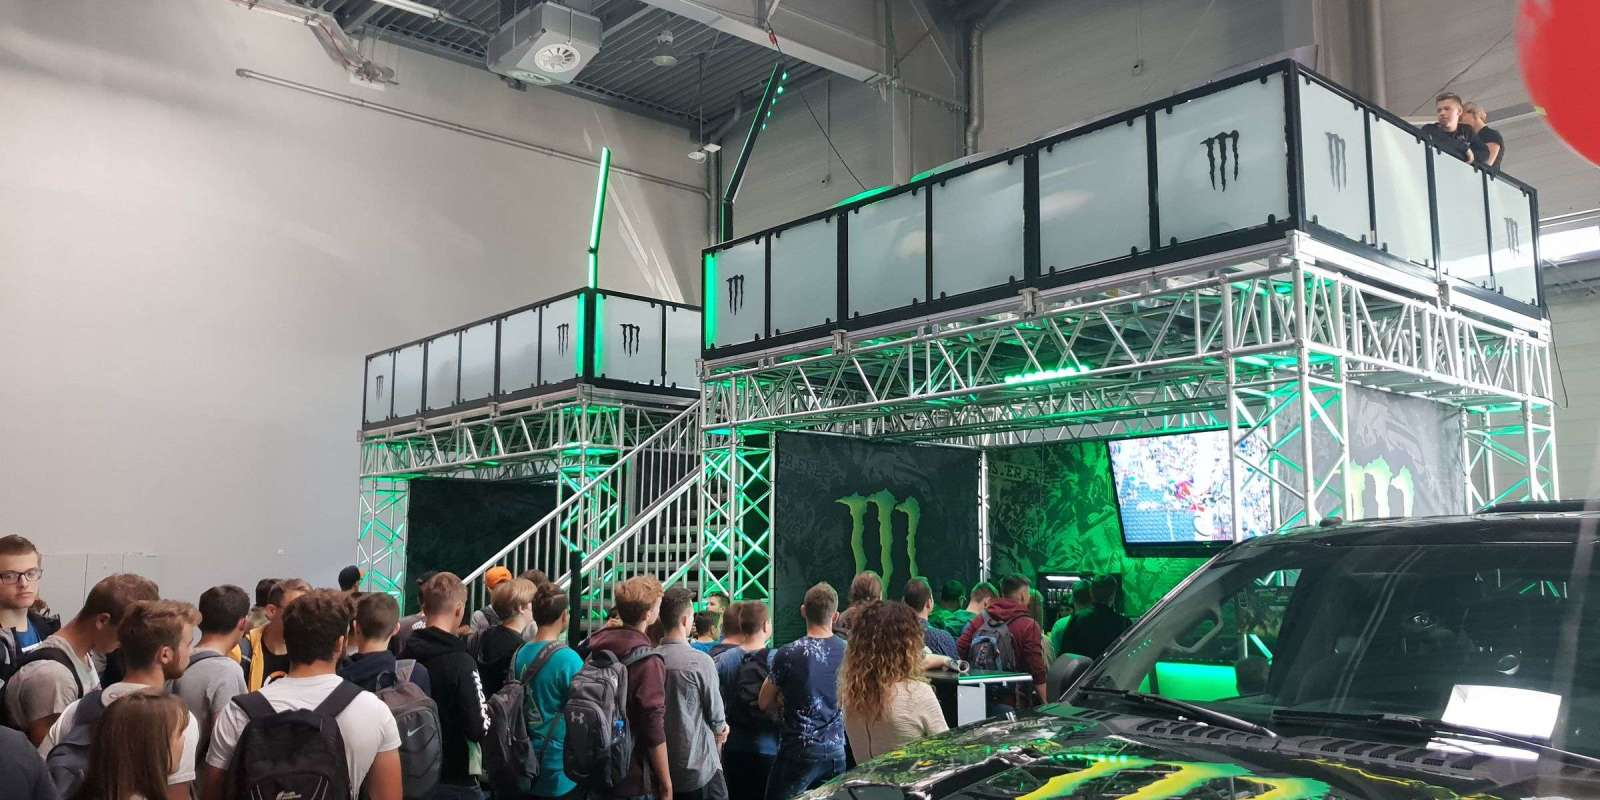 Images from Poznań Game Arena 2018 in Poland